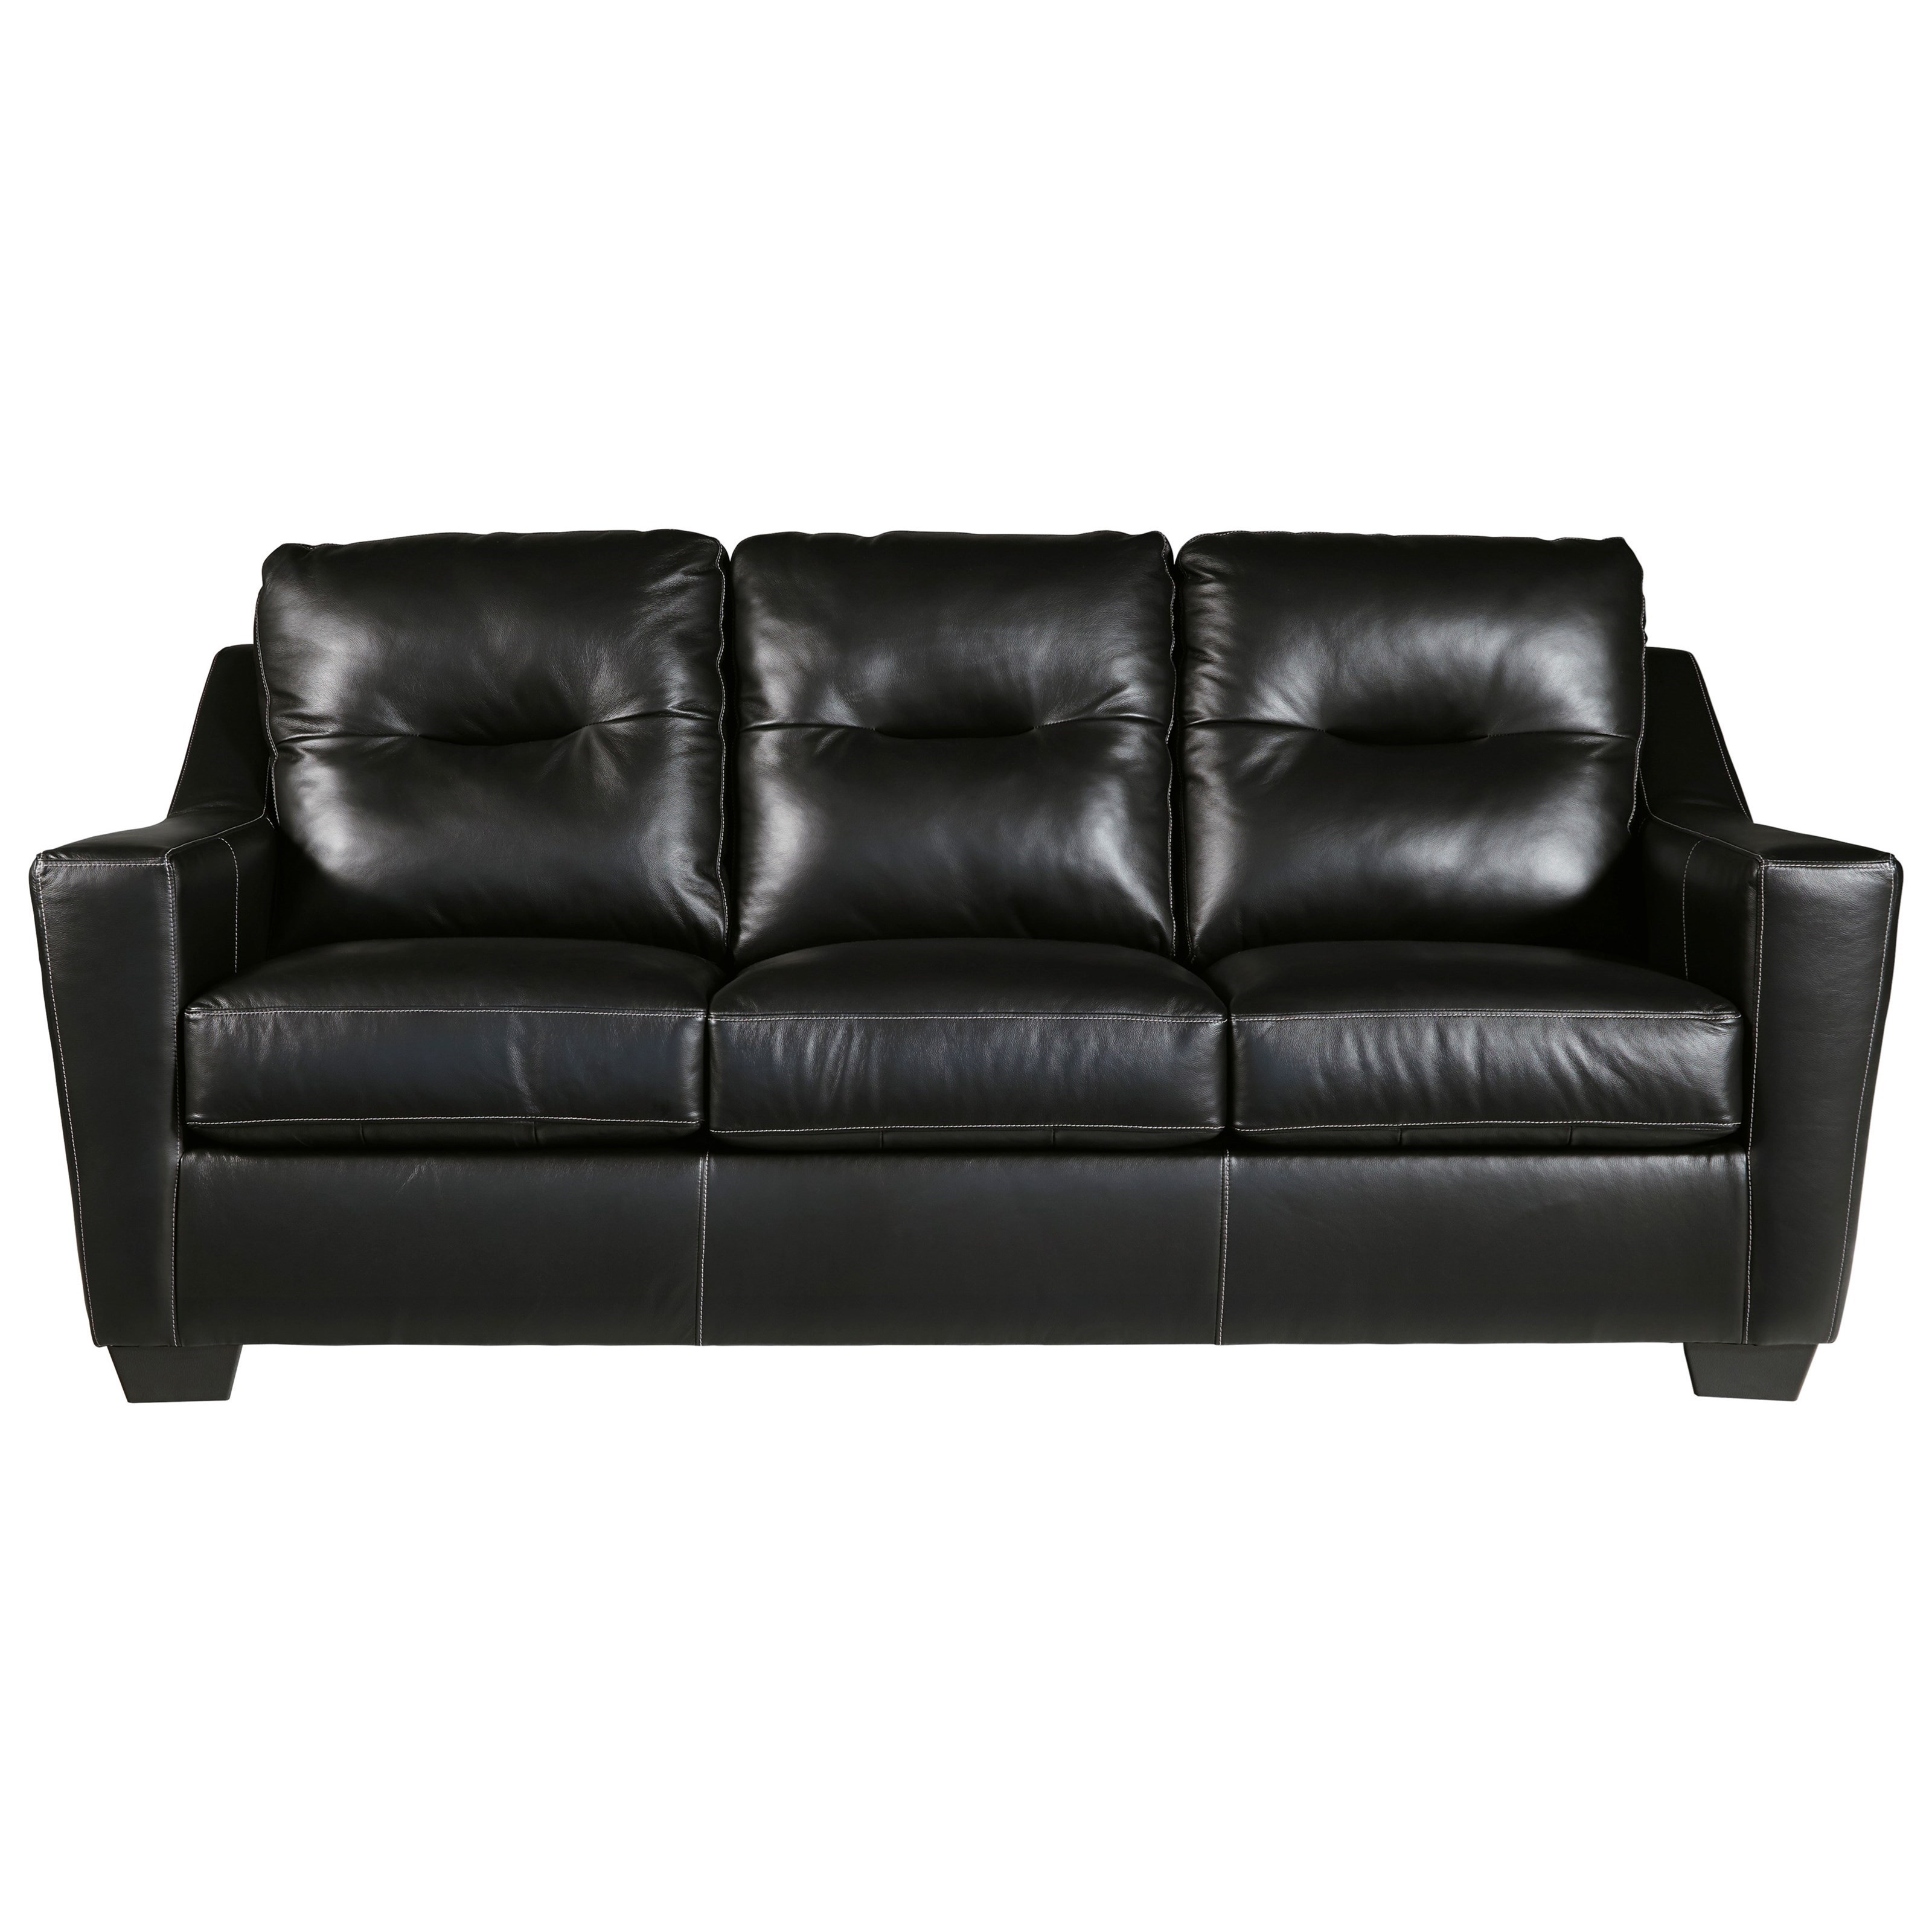 Exceptional Signature Design By Ashley Kensbridge Leather Match Contemporary Sofa